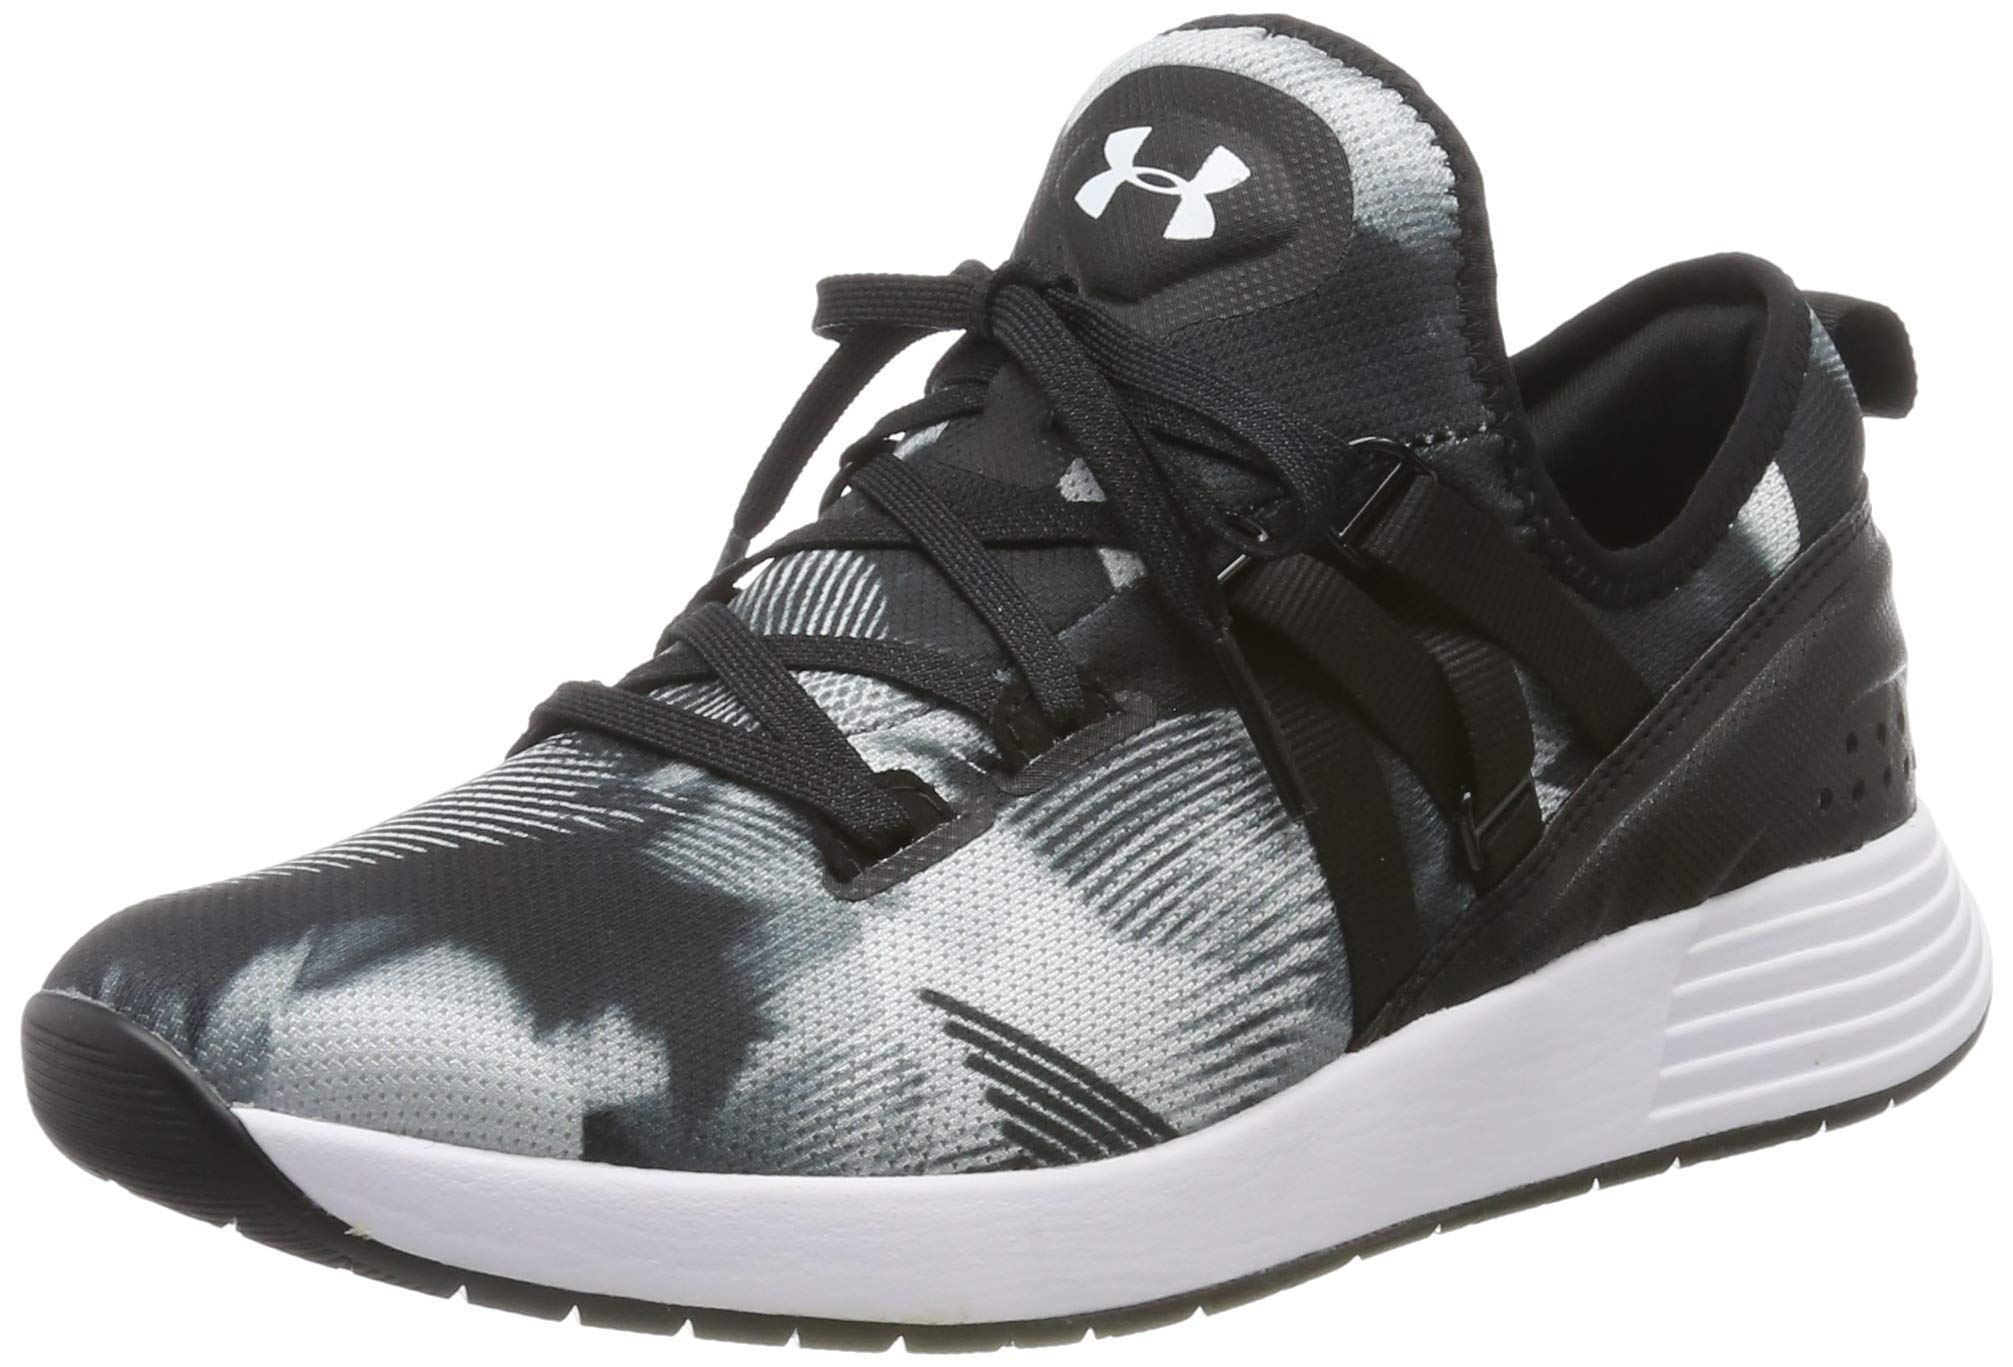 Under Armour Women's Breathe Trainer Print Cross, Black (001)/White, 5 by Under Armour